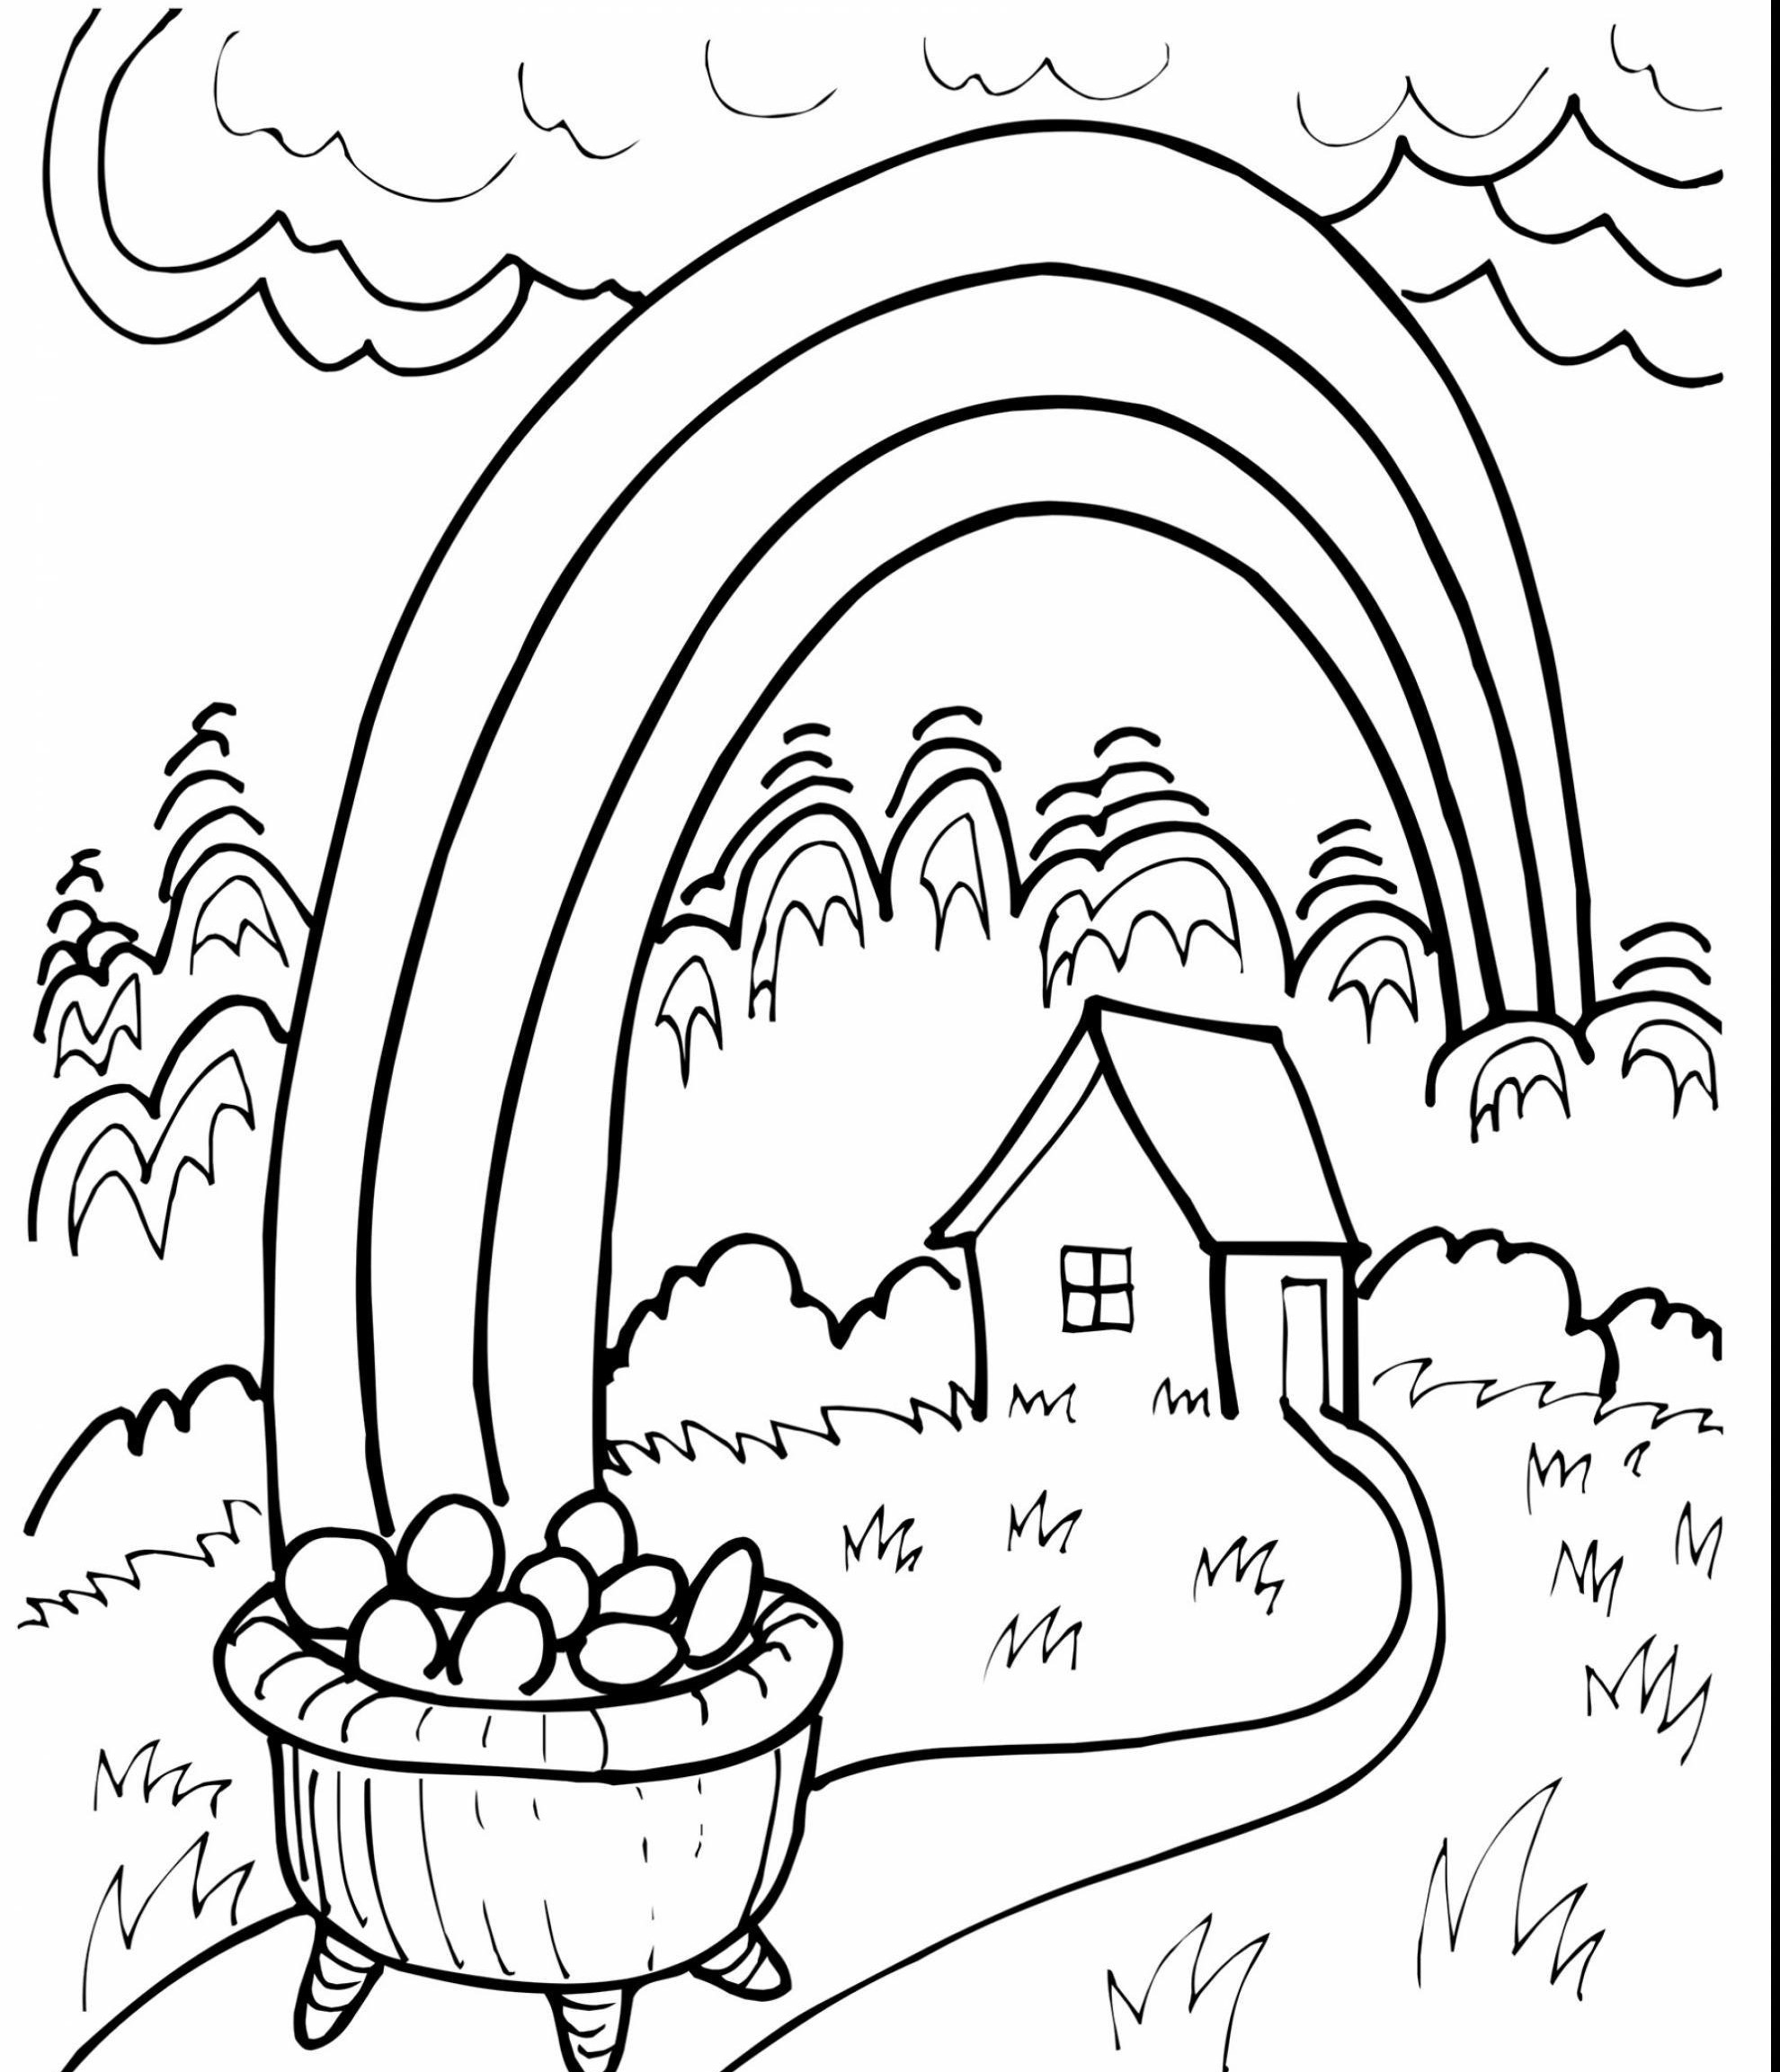 Rainbow Coloring Pages For Preschool Png Free Rainbow Coloring Pages For Preschool Png Transparent Images 117950 Pngio